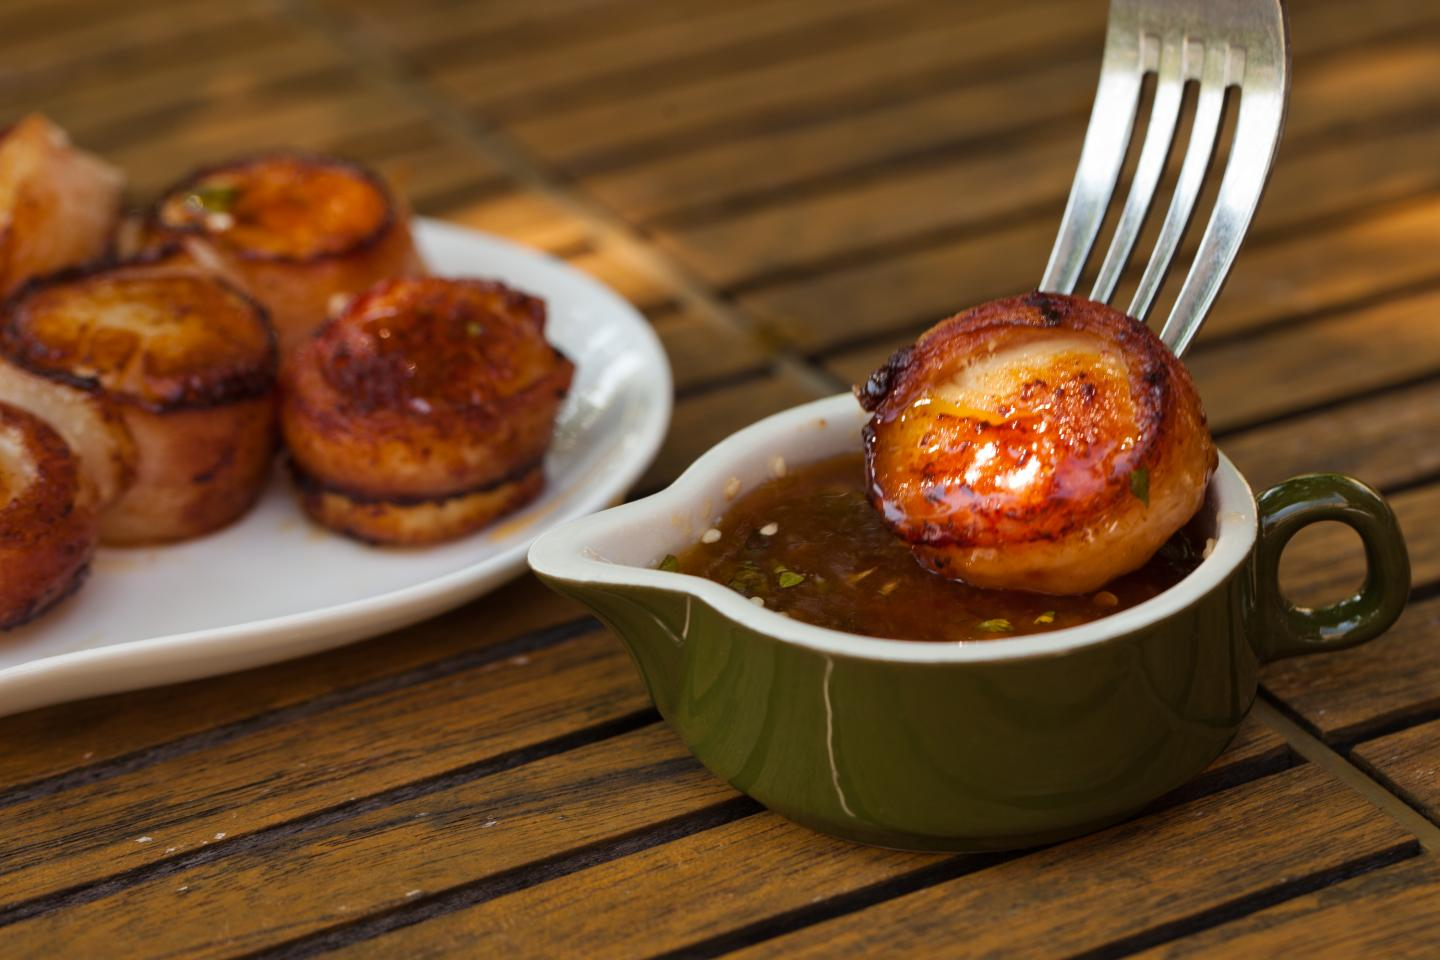 Wildfire Gluten-Free Applewood Smoked Bacon Wrapped Sea Scallop Skewers